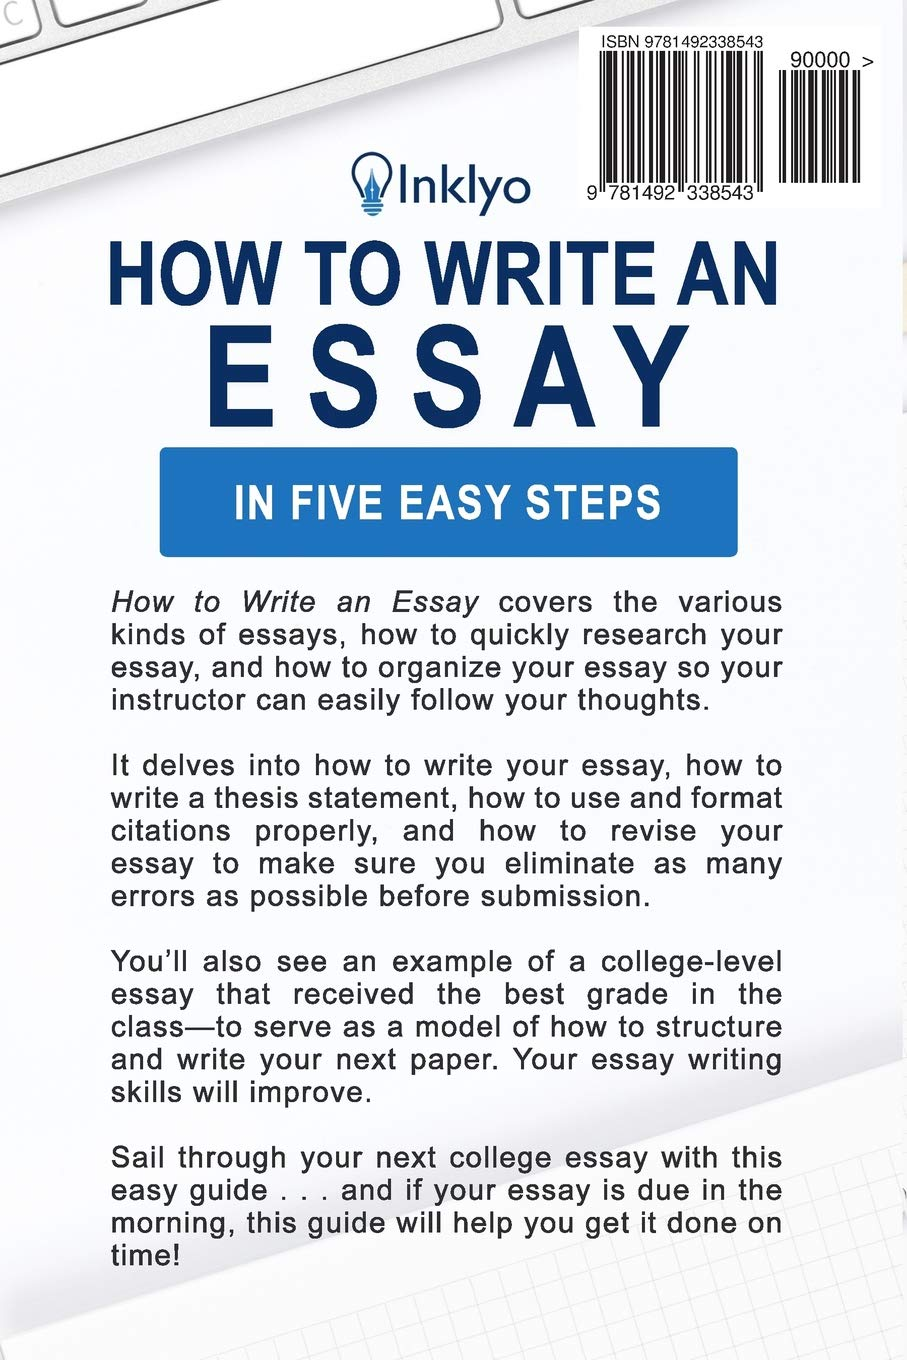 004 Essay Example Write An Unbelievable How To Fast In Exam 6 Hours Full